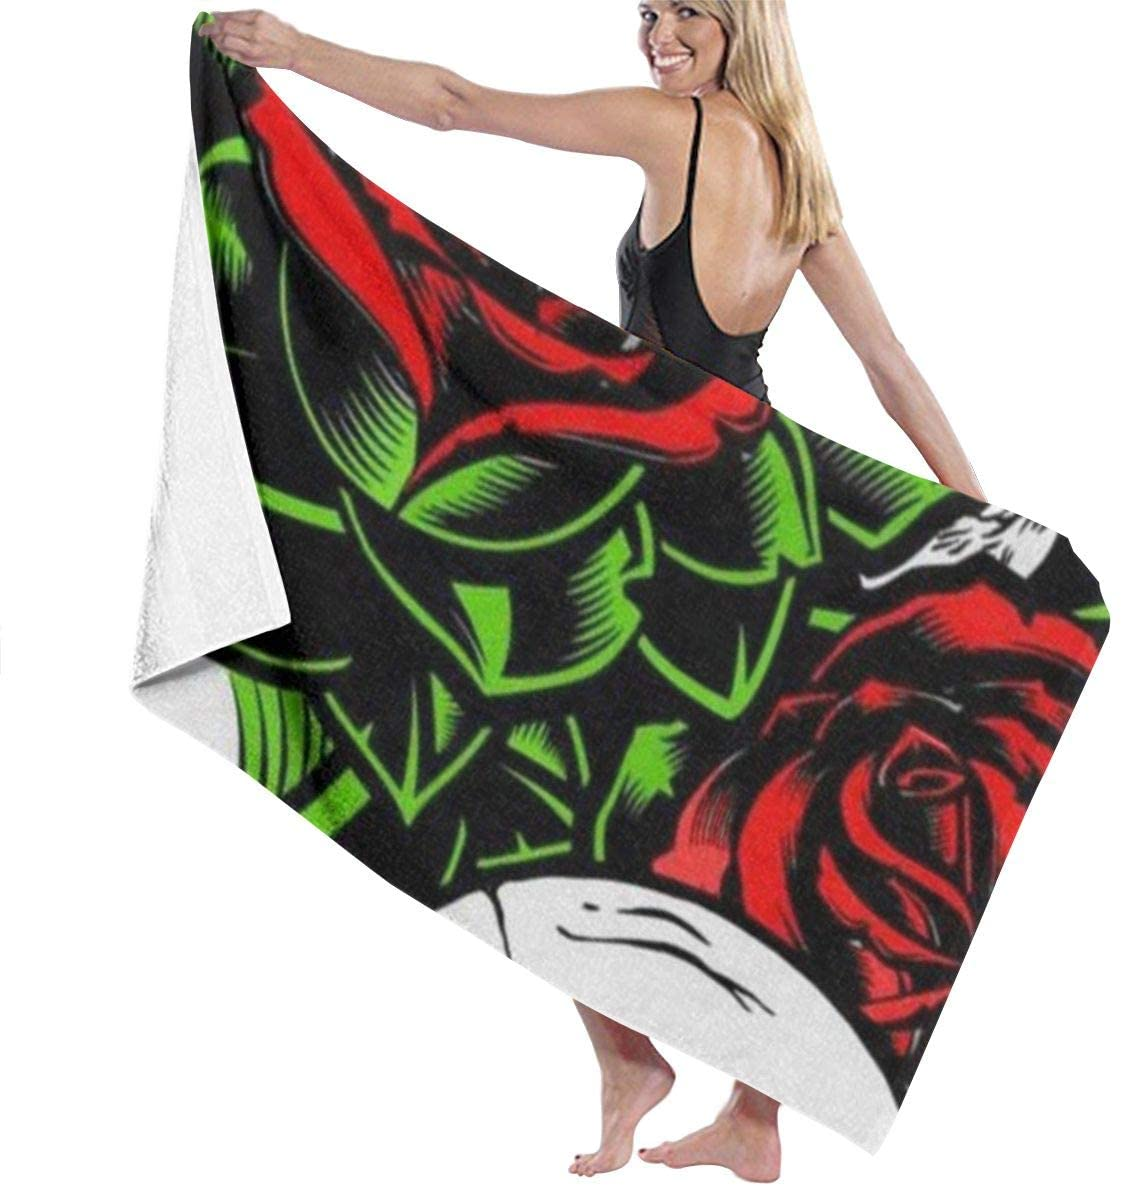 NiYoung Lightweight Bath Towels Highly Absorbent and Quick Dry Extra Large Bath Towel Super Soft Hotel Quality Towel for Spa, Shower, Bath and Gym Towel, Skulls Red Rose Lower Green Leaf